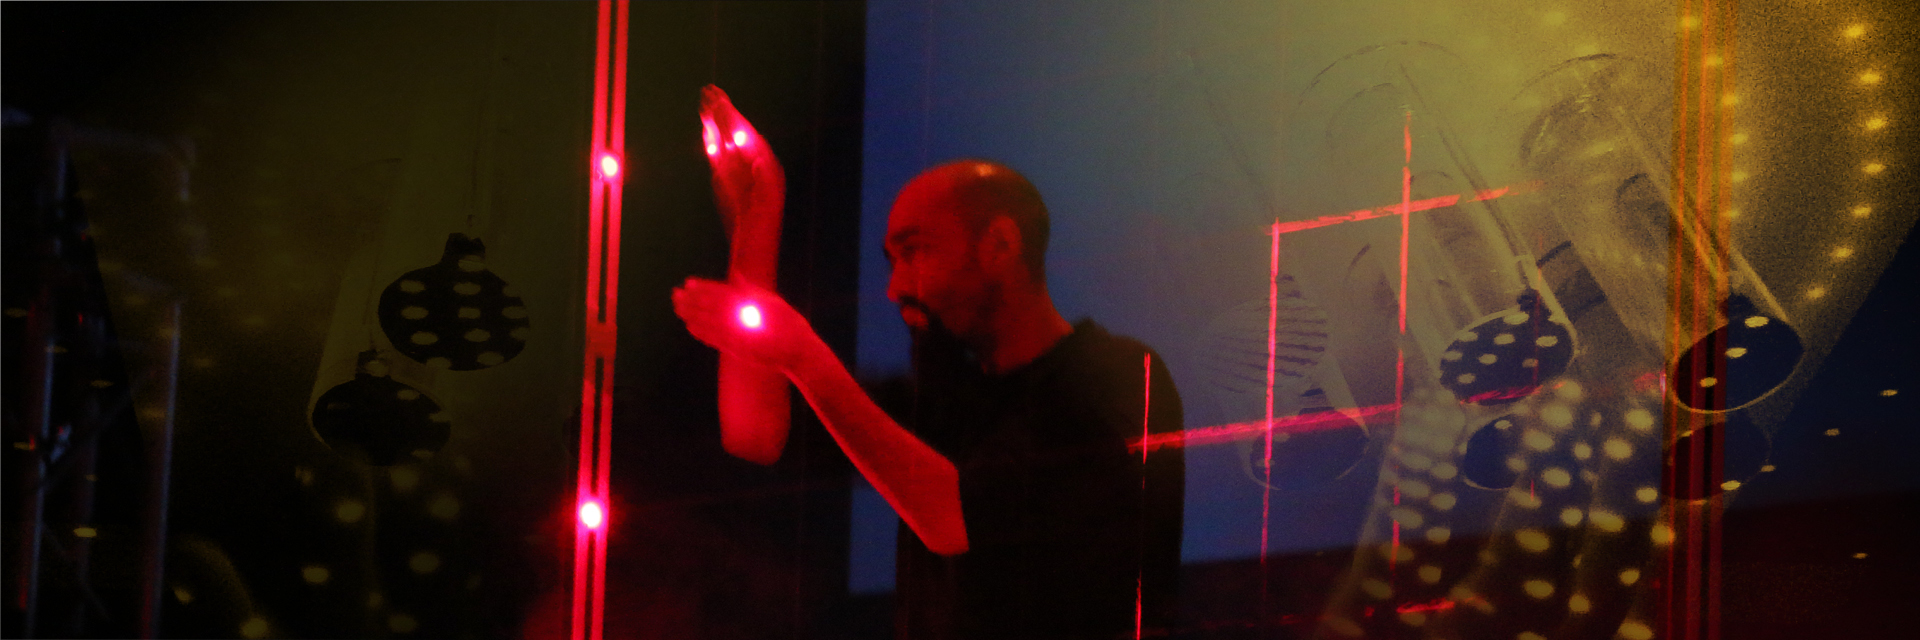 A man playing a set of criss-crossing red lasers within a square frame like a stringed instrument.